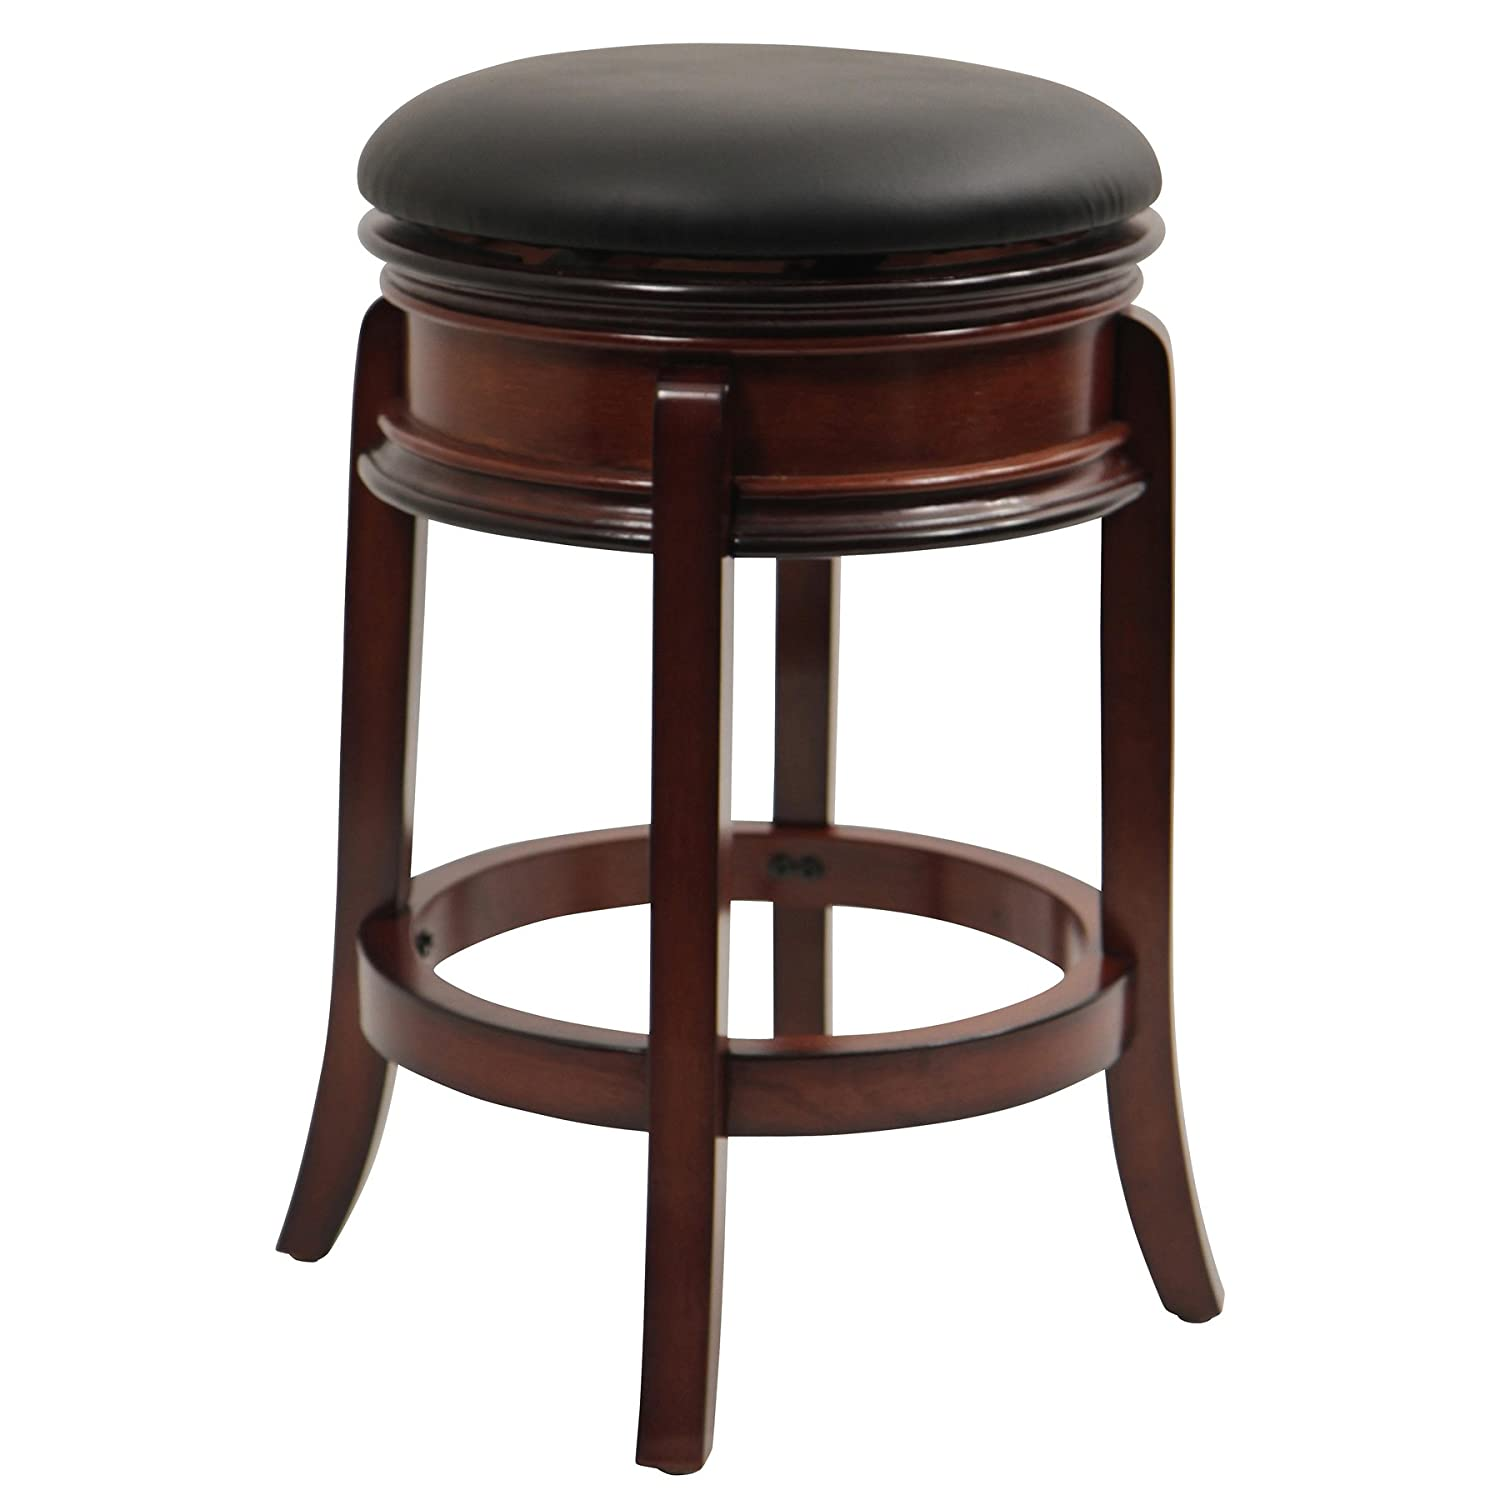 Amazon.com Boraam 43024 Magellan Counter Height Swivel Stool 24-Inch Brandy Kitchen u0026 Dining  sc 1 st  Amazon.com & Amazon.com: Boraam 43024 Magellan Counter Height Swivel Stool 24 ... islam-shia.org